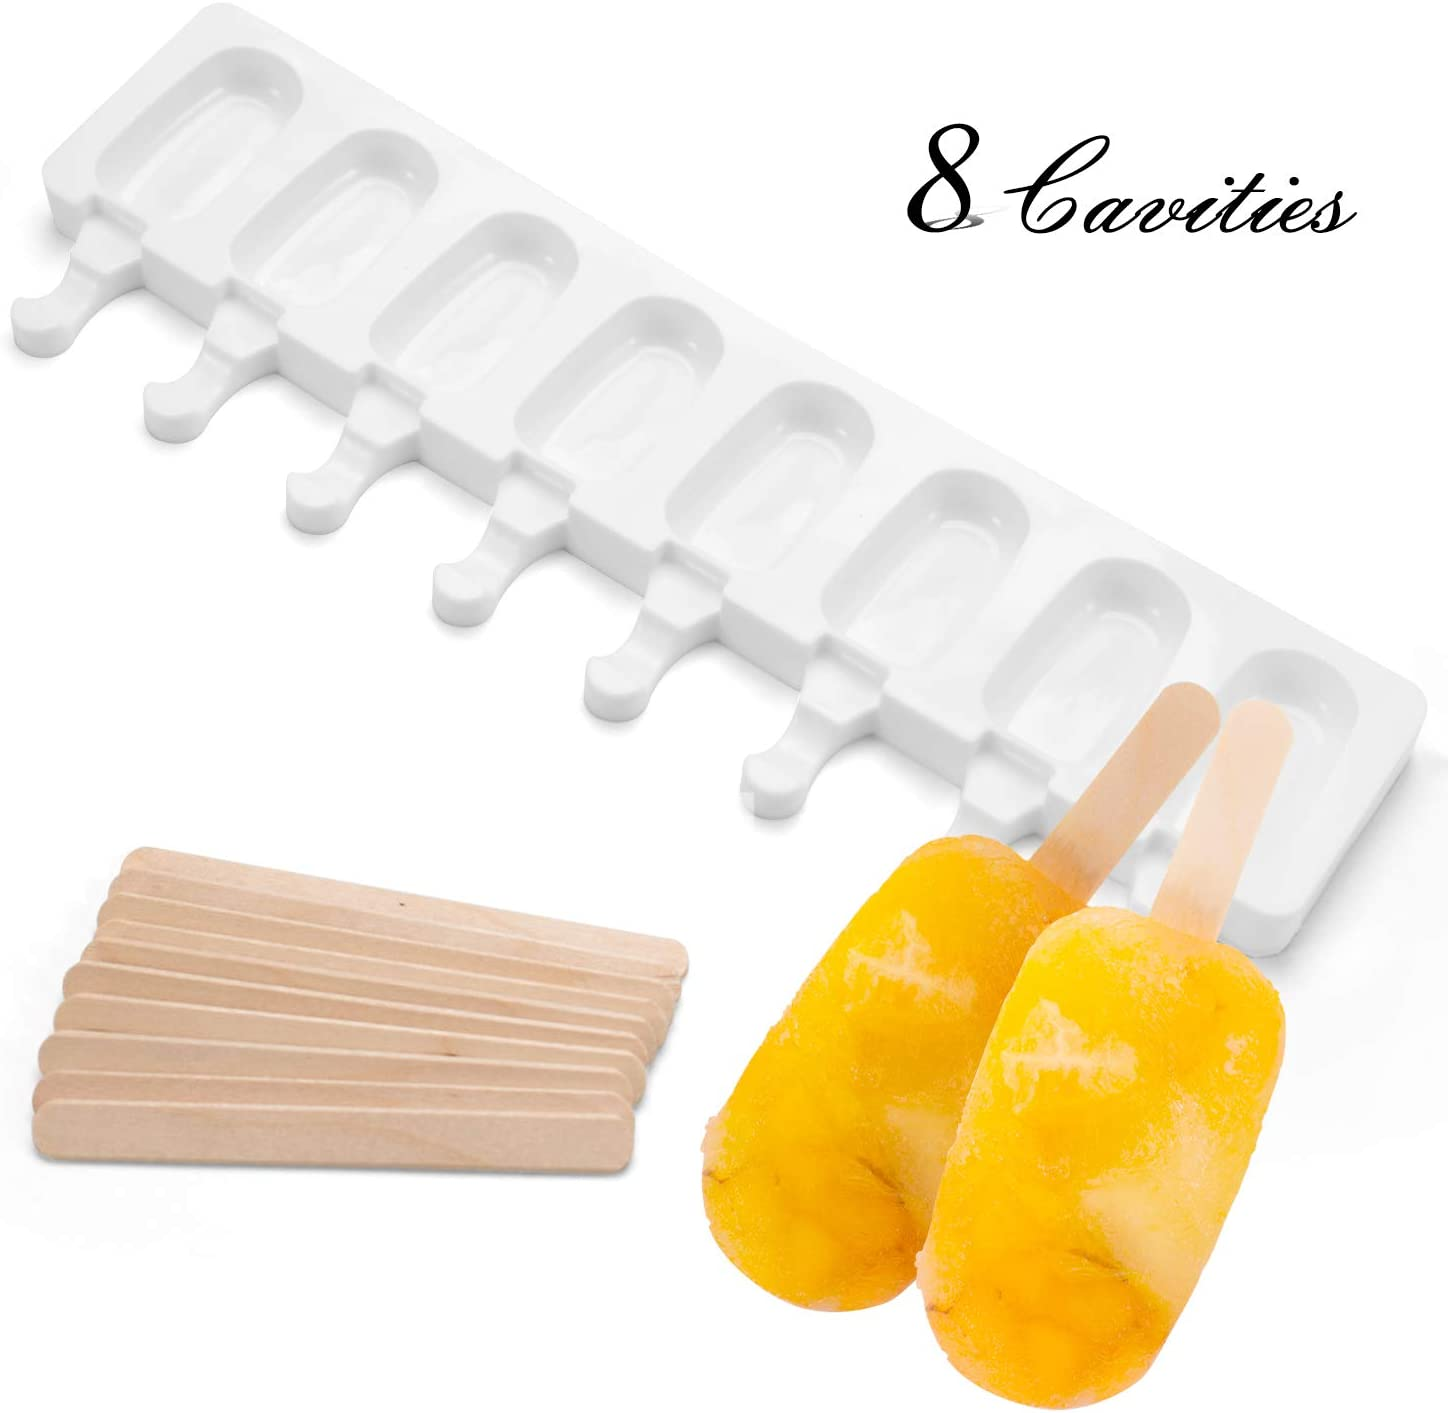 Ice Cream Maker Molds, FollowYT Mini Classic Shape Silicone Mold Popsicle Moulds for Ice Cream Pops with Popsicle Sticks (1 pack)